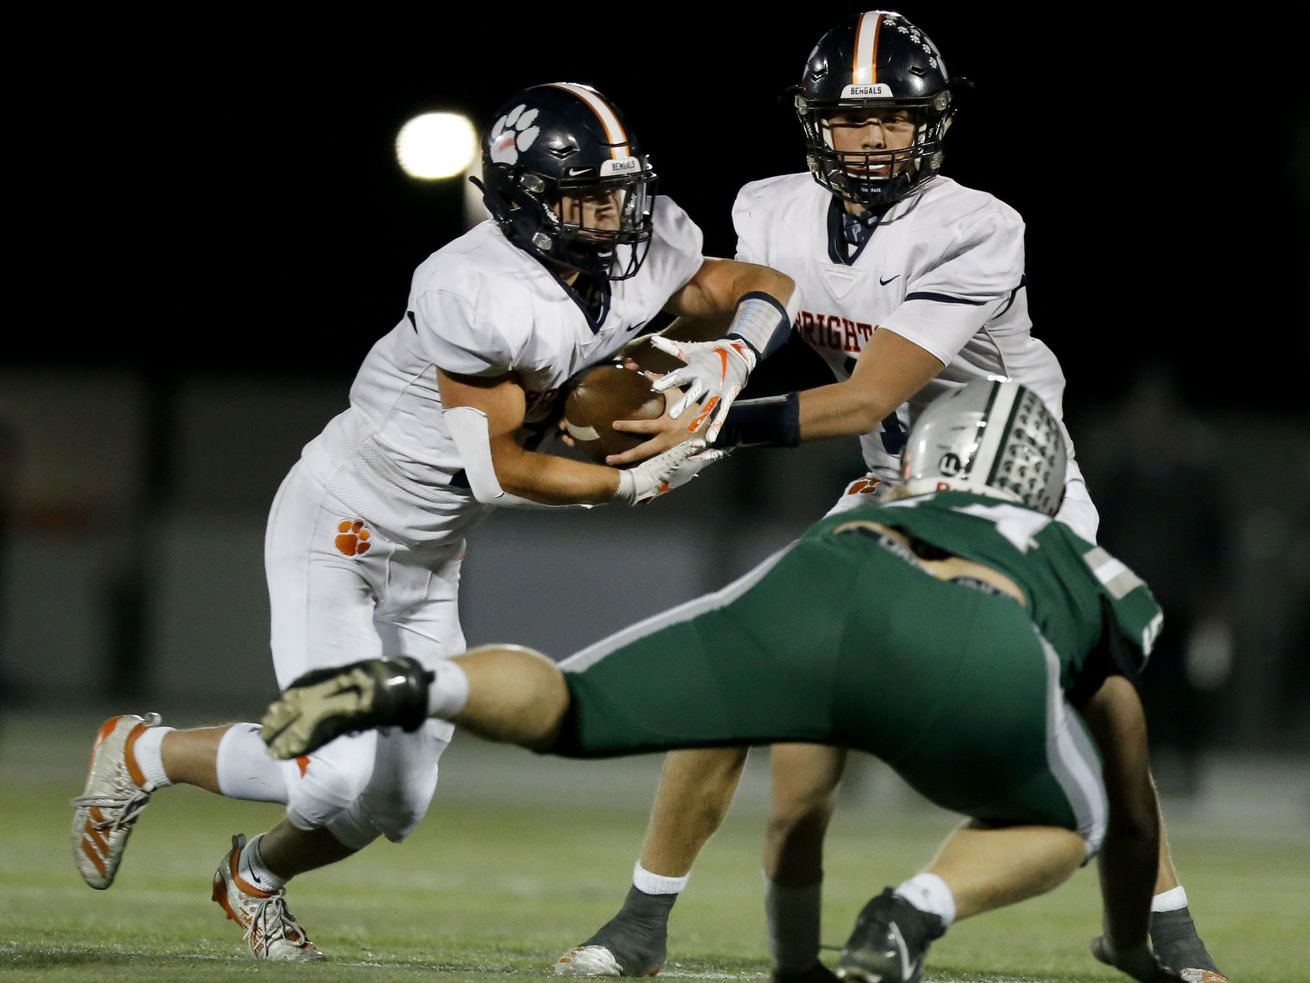 Action in the Brighton vs. Olympus football game at Olympus High School in Holladay on Friday, Sept. 11, 2020.